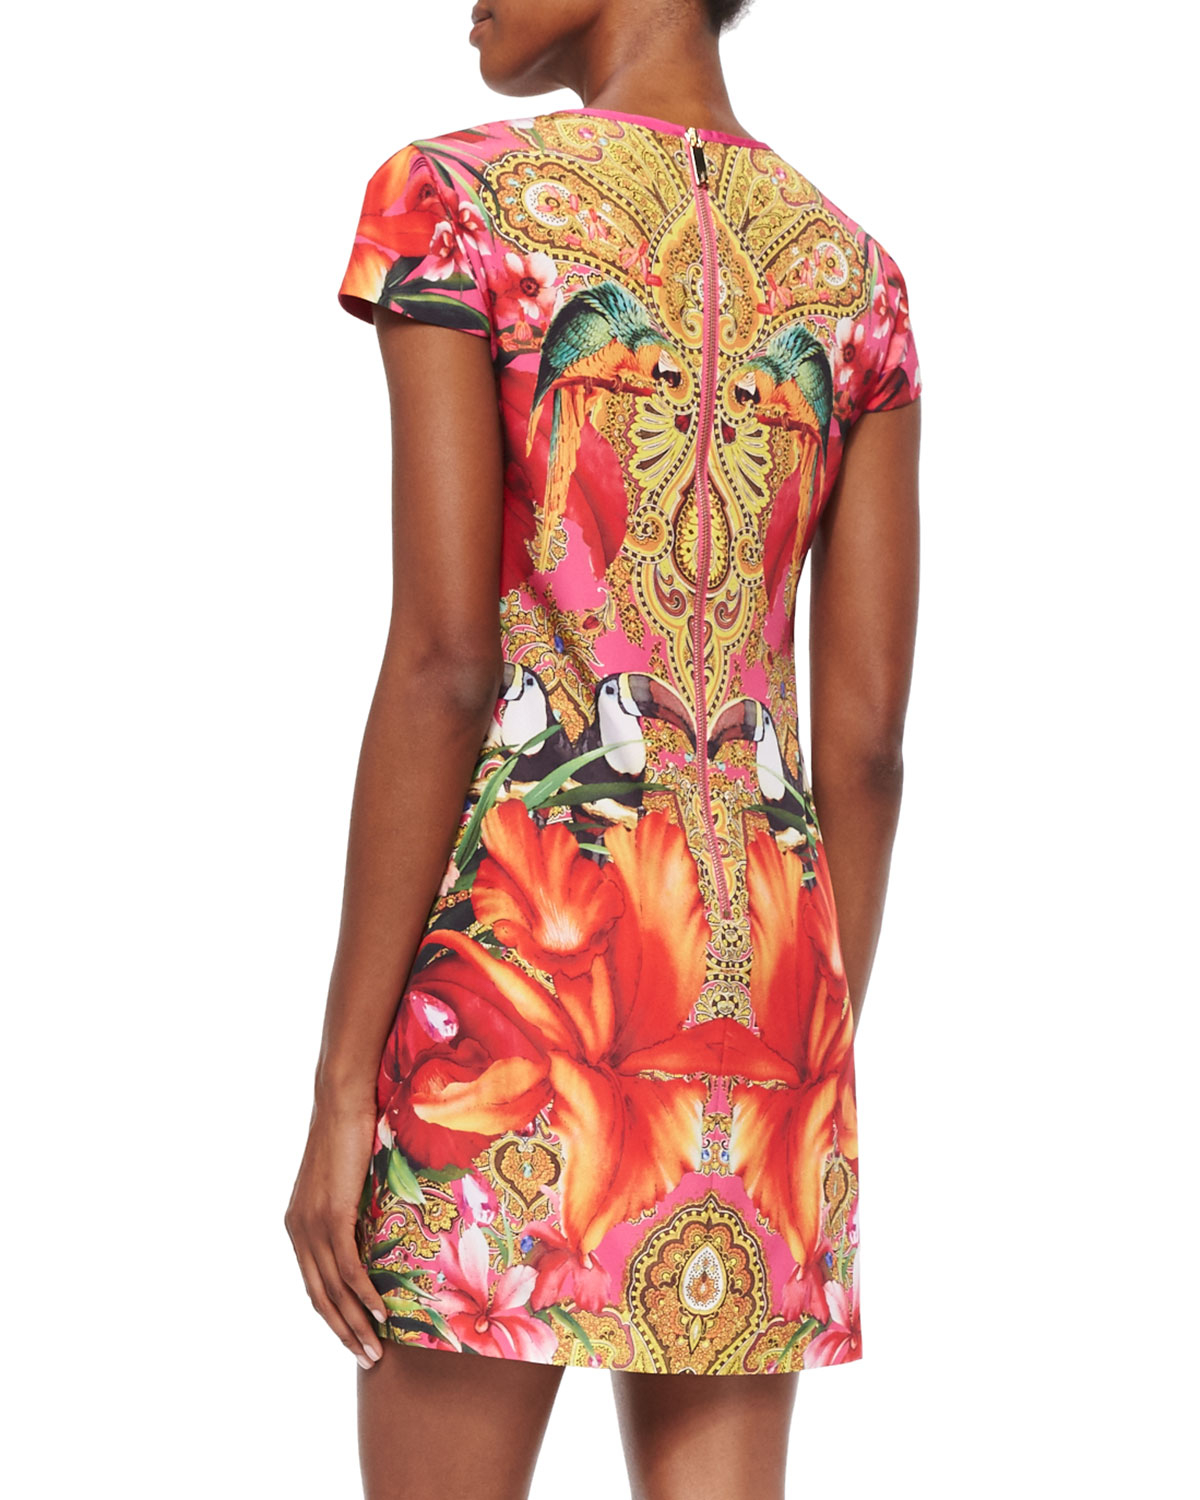 dbbeb8f097e025 Lyst - Ted Baker Paisley Toucan Printed Shift Dress in Red